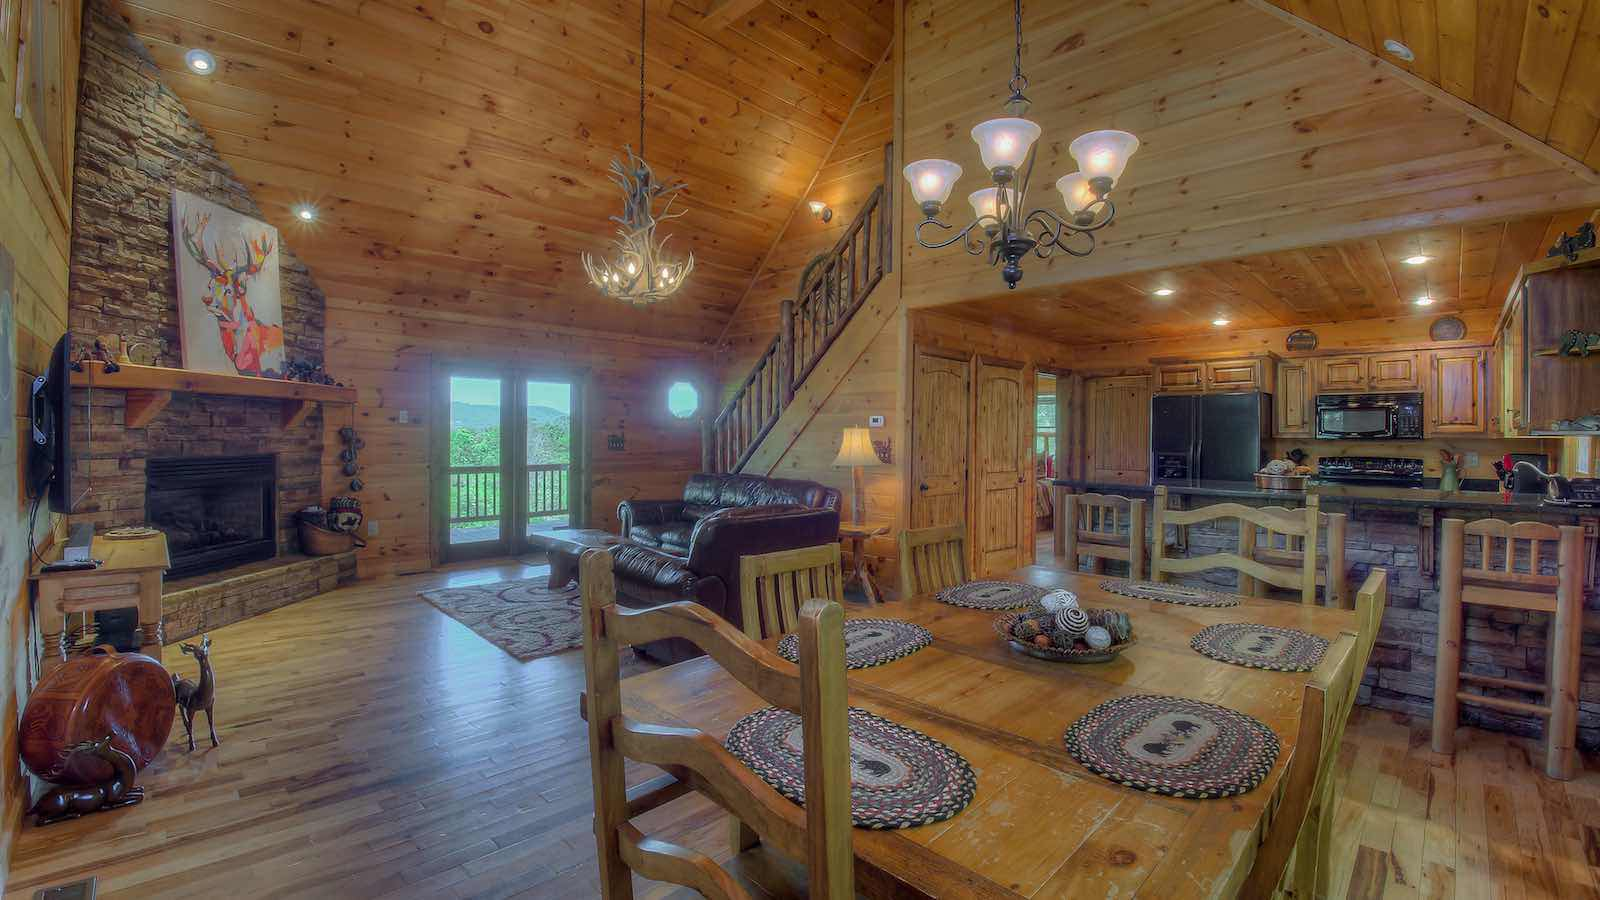 cabin rentals smoky cabins mountain for mountains great log airbnb hotels nc cherokee adise sale old gatlinburg